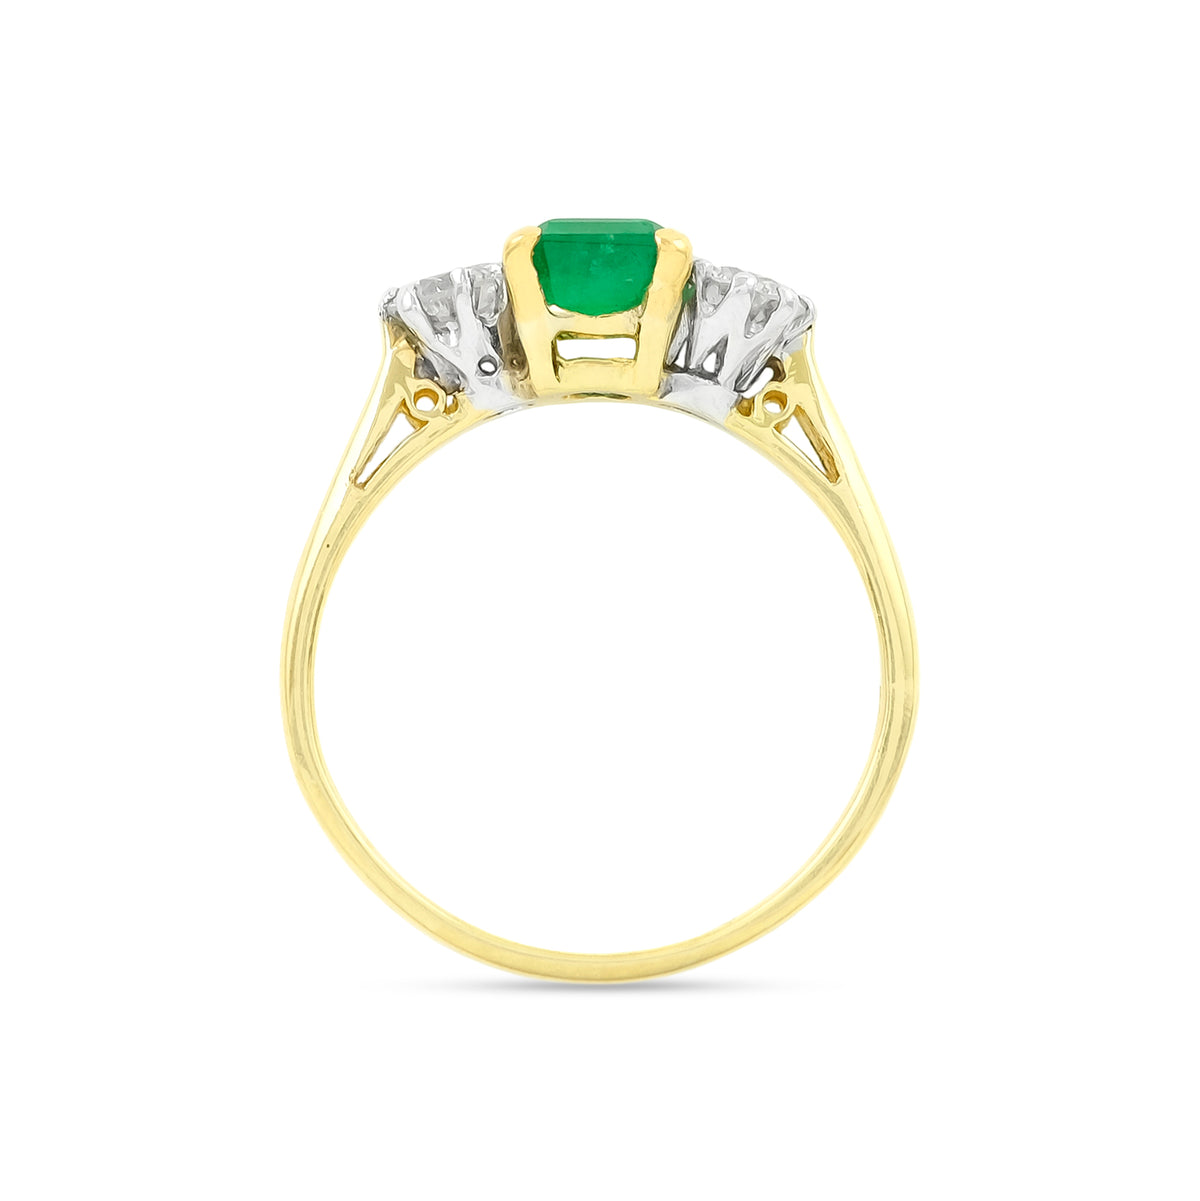 Vintage 18ct Yellow Gold Three Stone Emerald and Diamond Ring